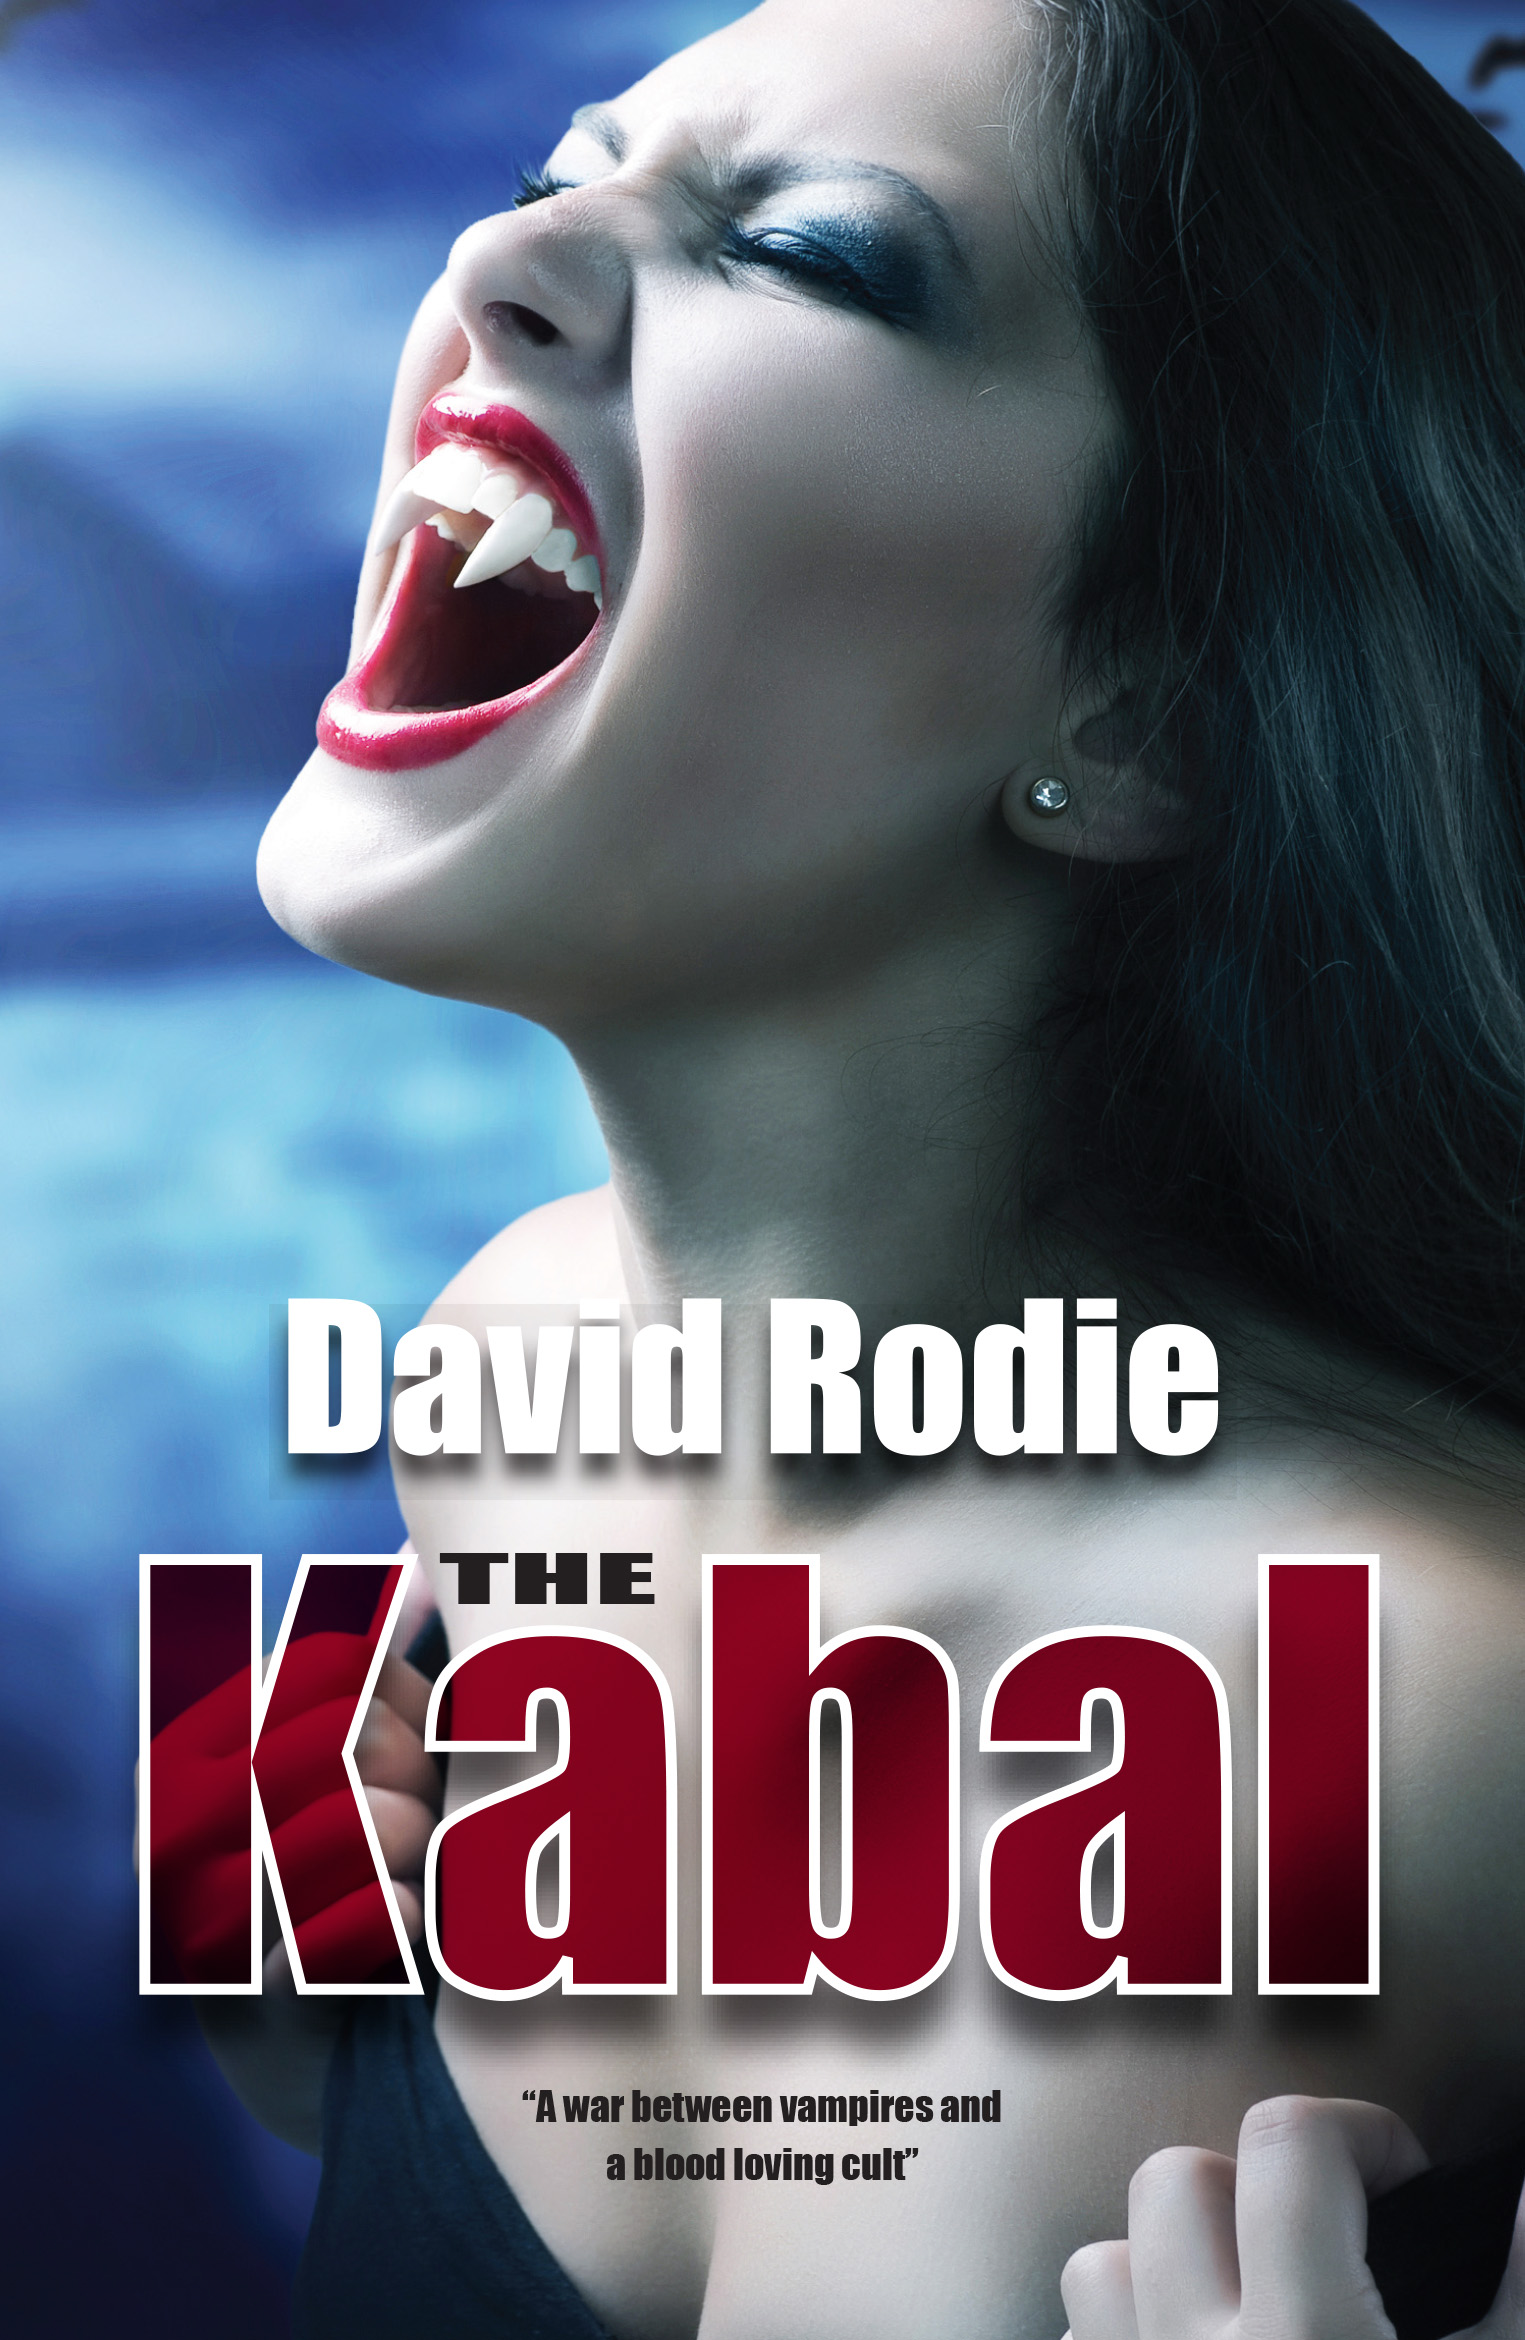 The Kabal